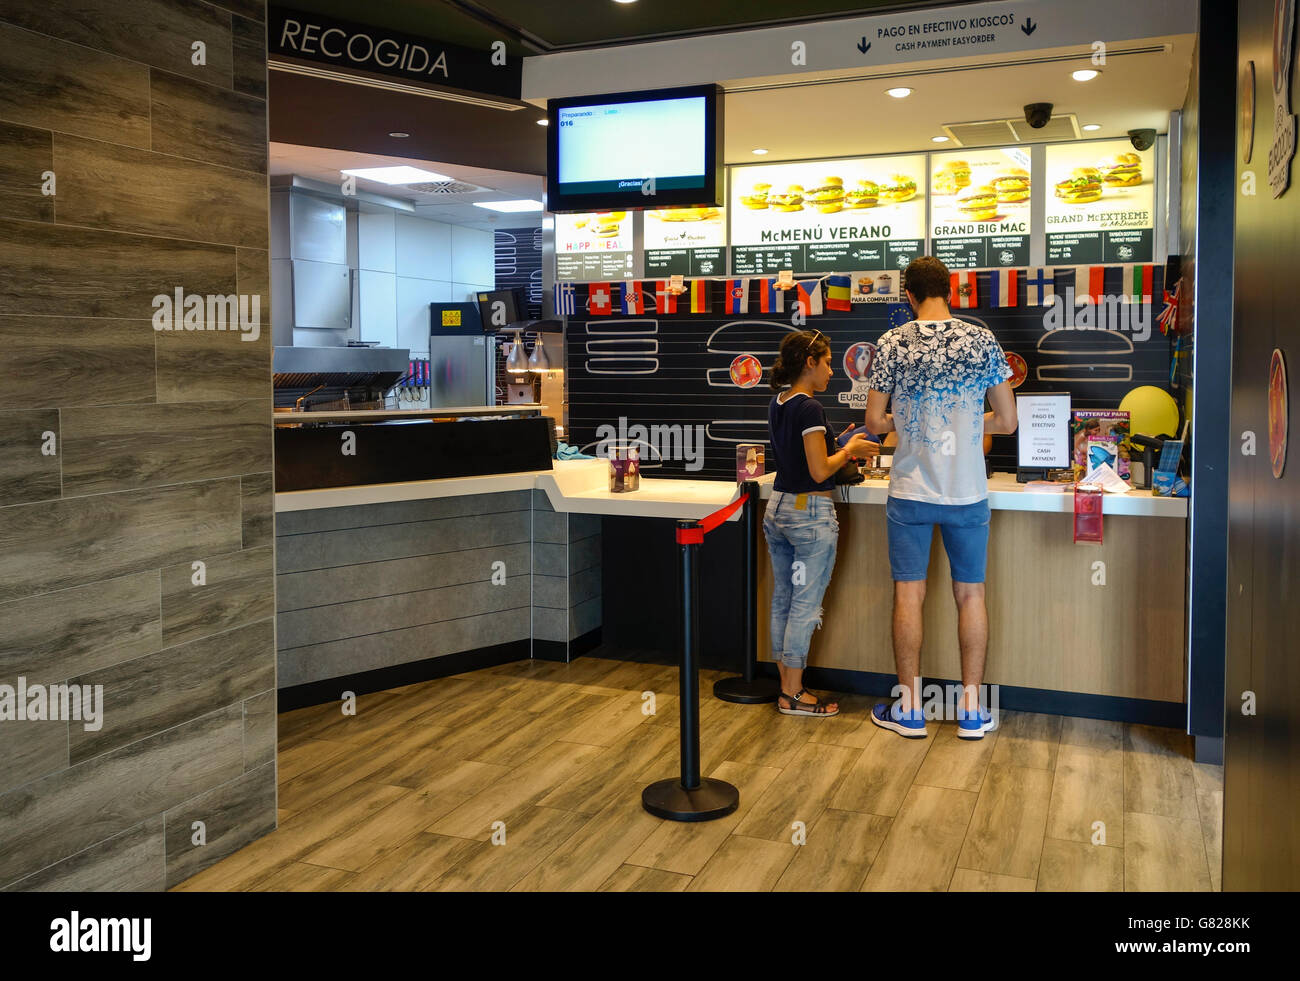 Young couple at counter, Mcdonald's restaurant in Fuengirola, Spain. - Stock Image